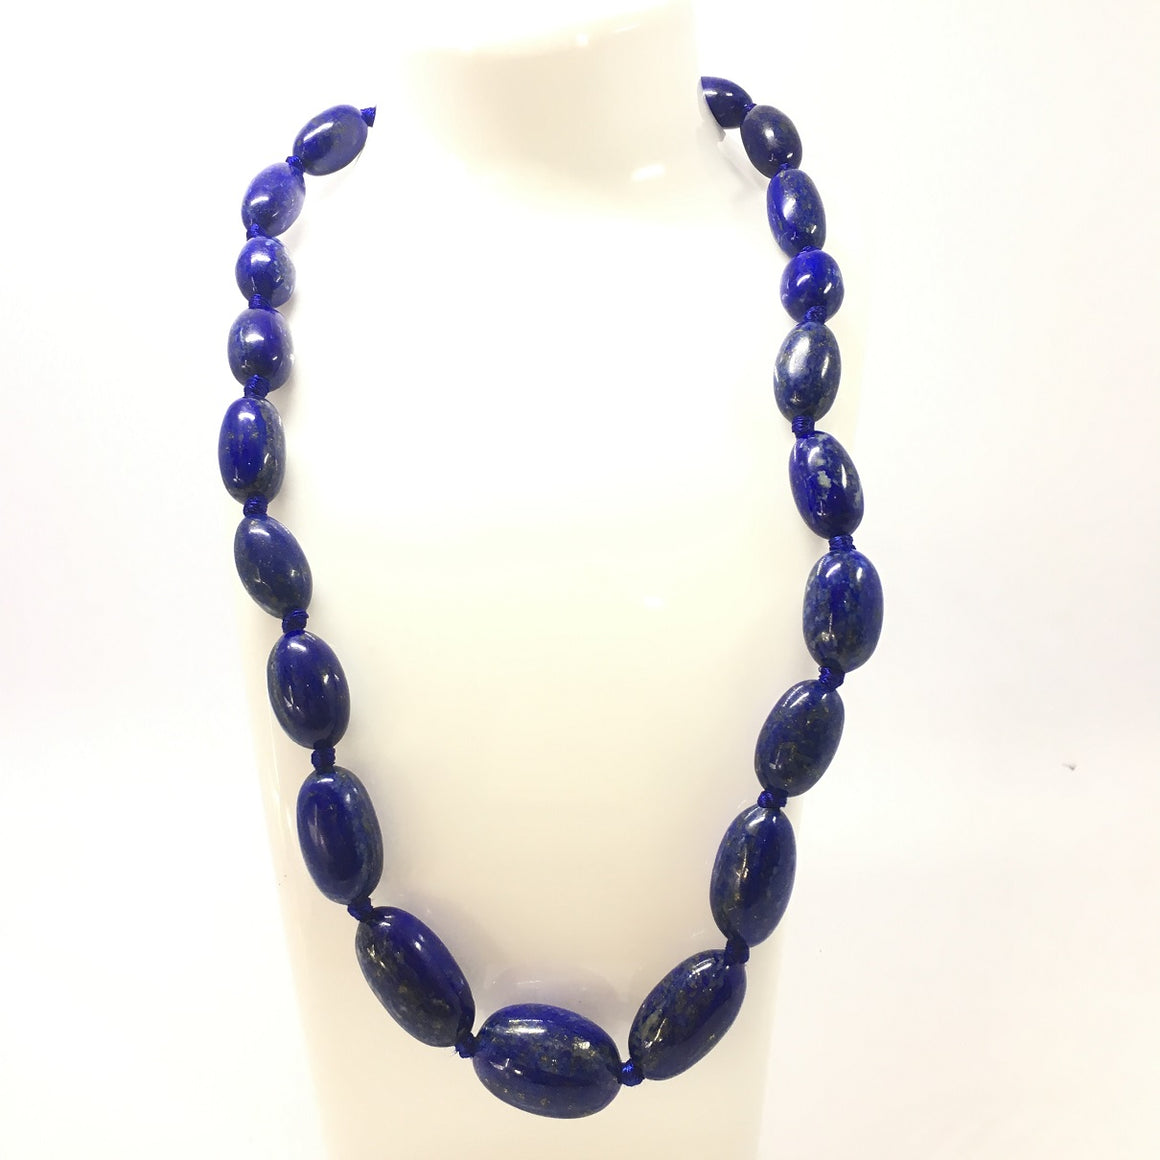 476.0 Carat, 21 Oval Beads Lapis Lazuli Necklace with Metal Lock